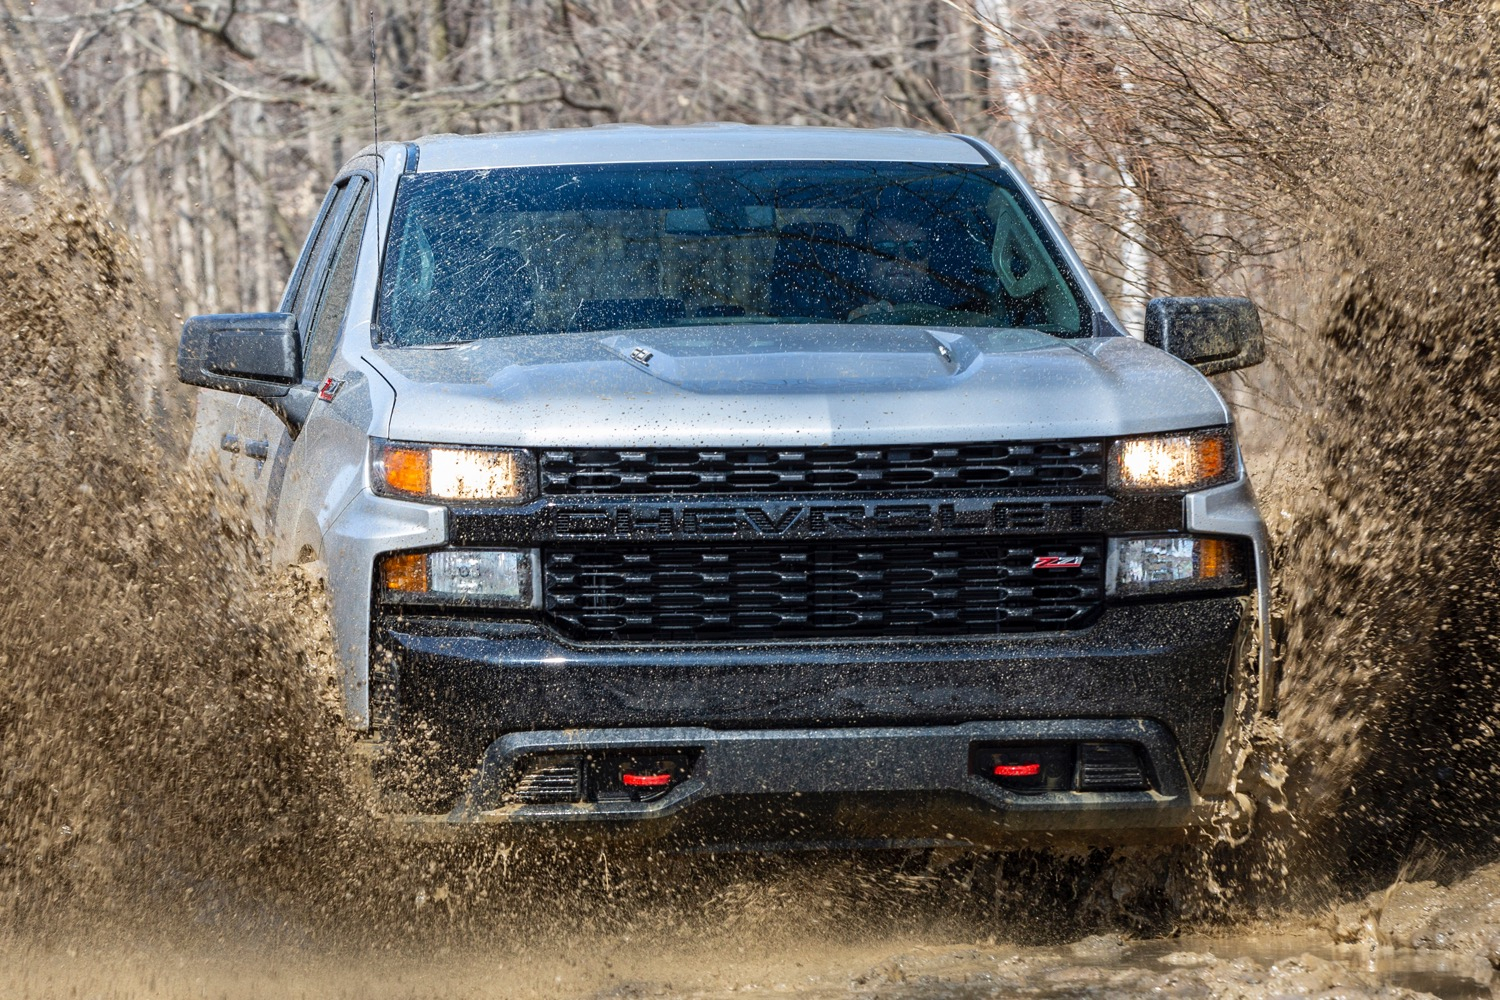 Updated Gm Truck Interiors To Be Top Notch | Gm Authority Lease A 2021 Chevy Silverado Engine Problems, Front Bumper, Forum